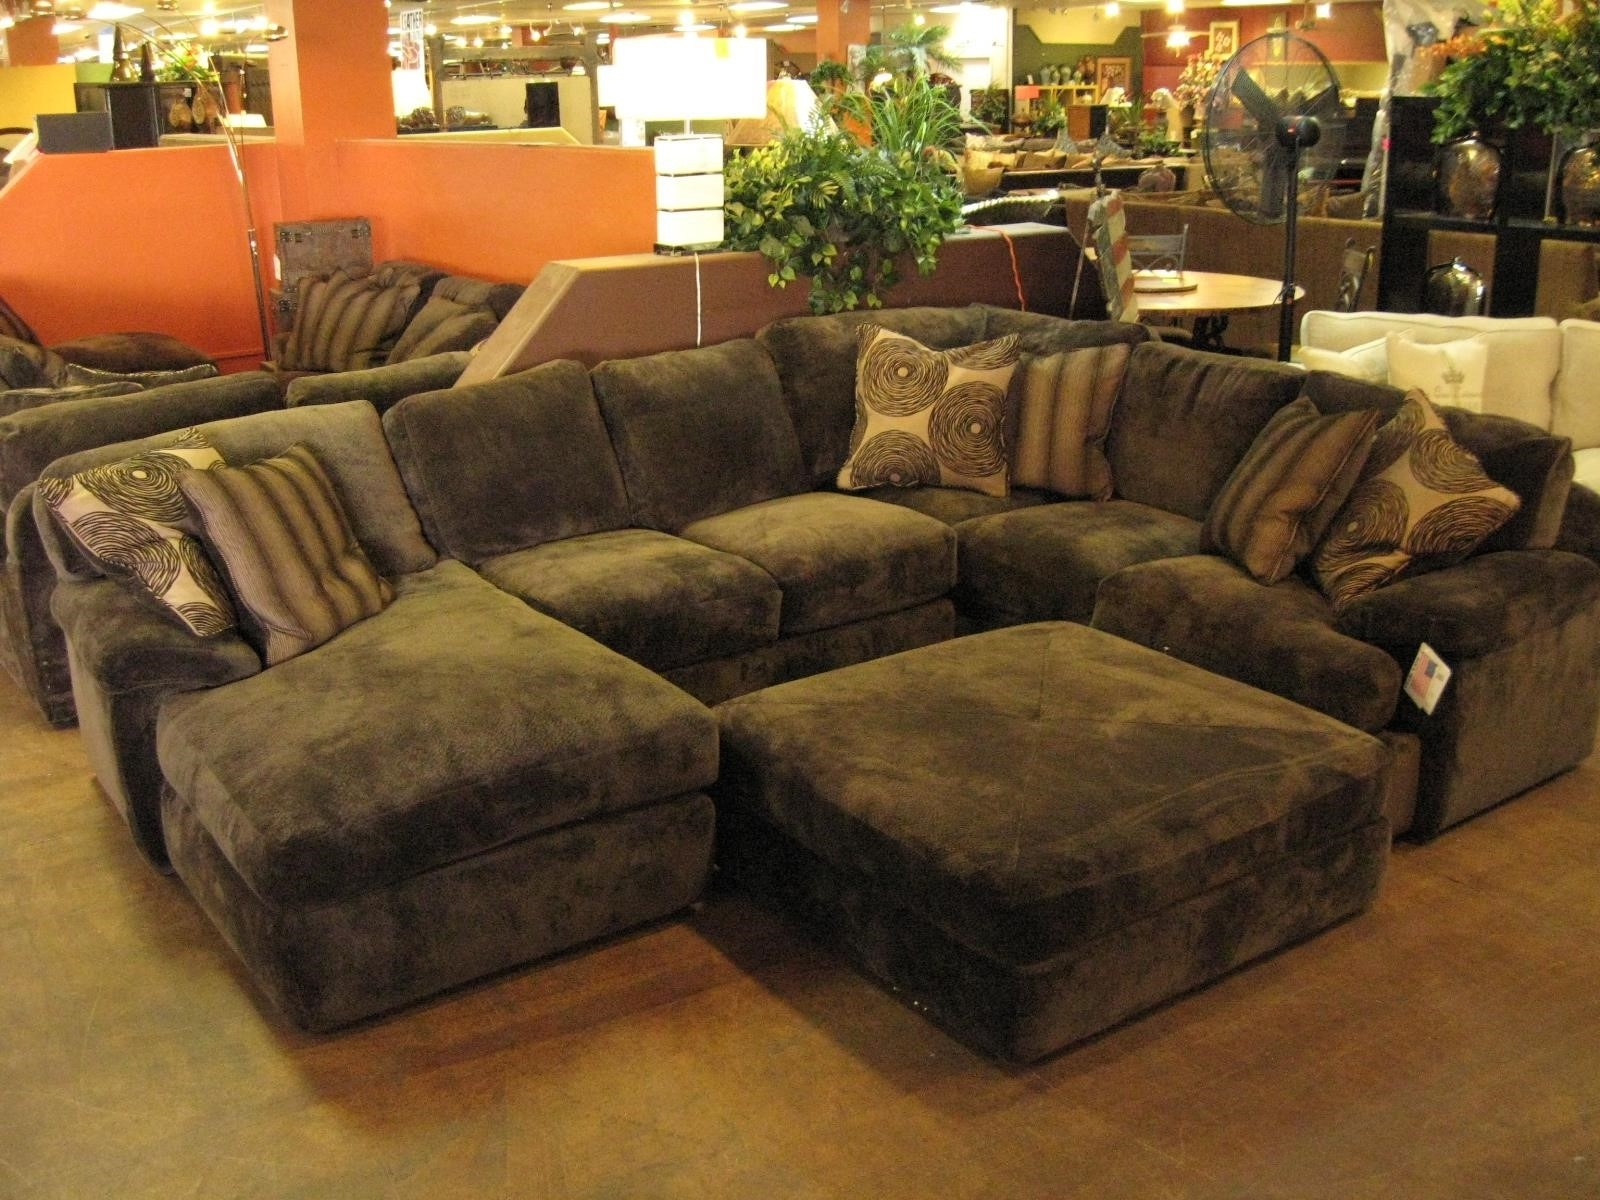 Large Sectional Sofas Inside Preferred Sofa : Magnificent Large Sectional Sofa With Chaise Reclining (View 6 of 15)